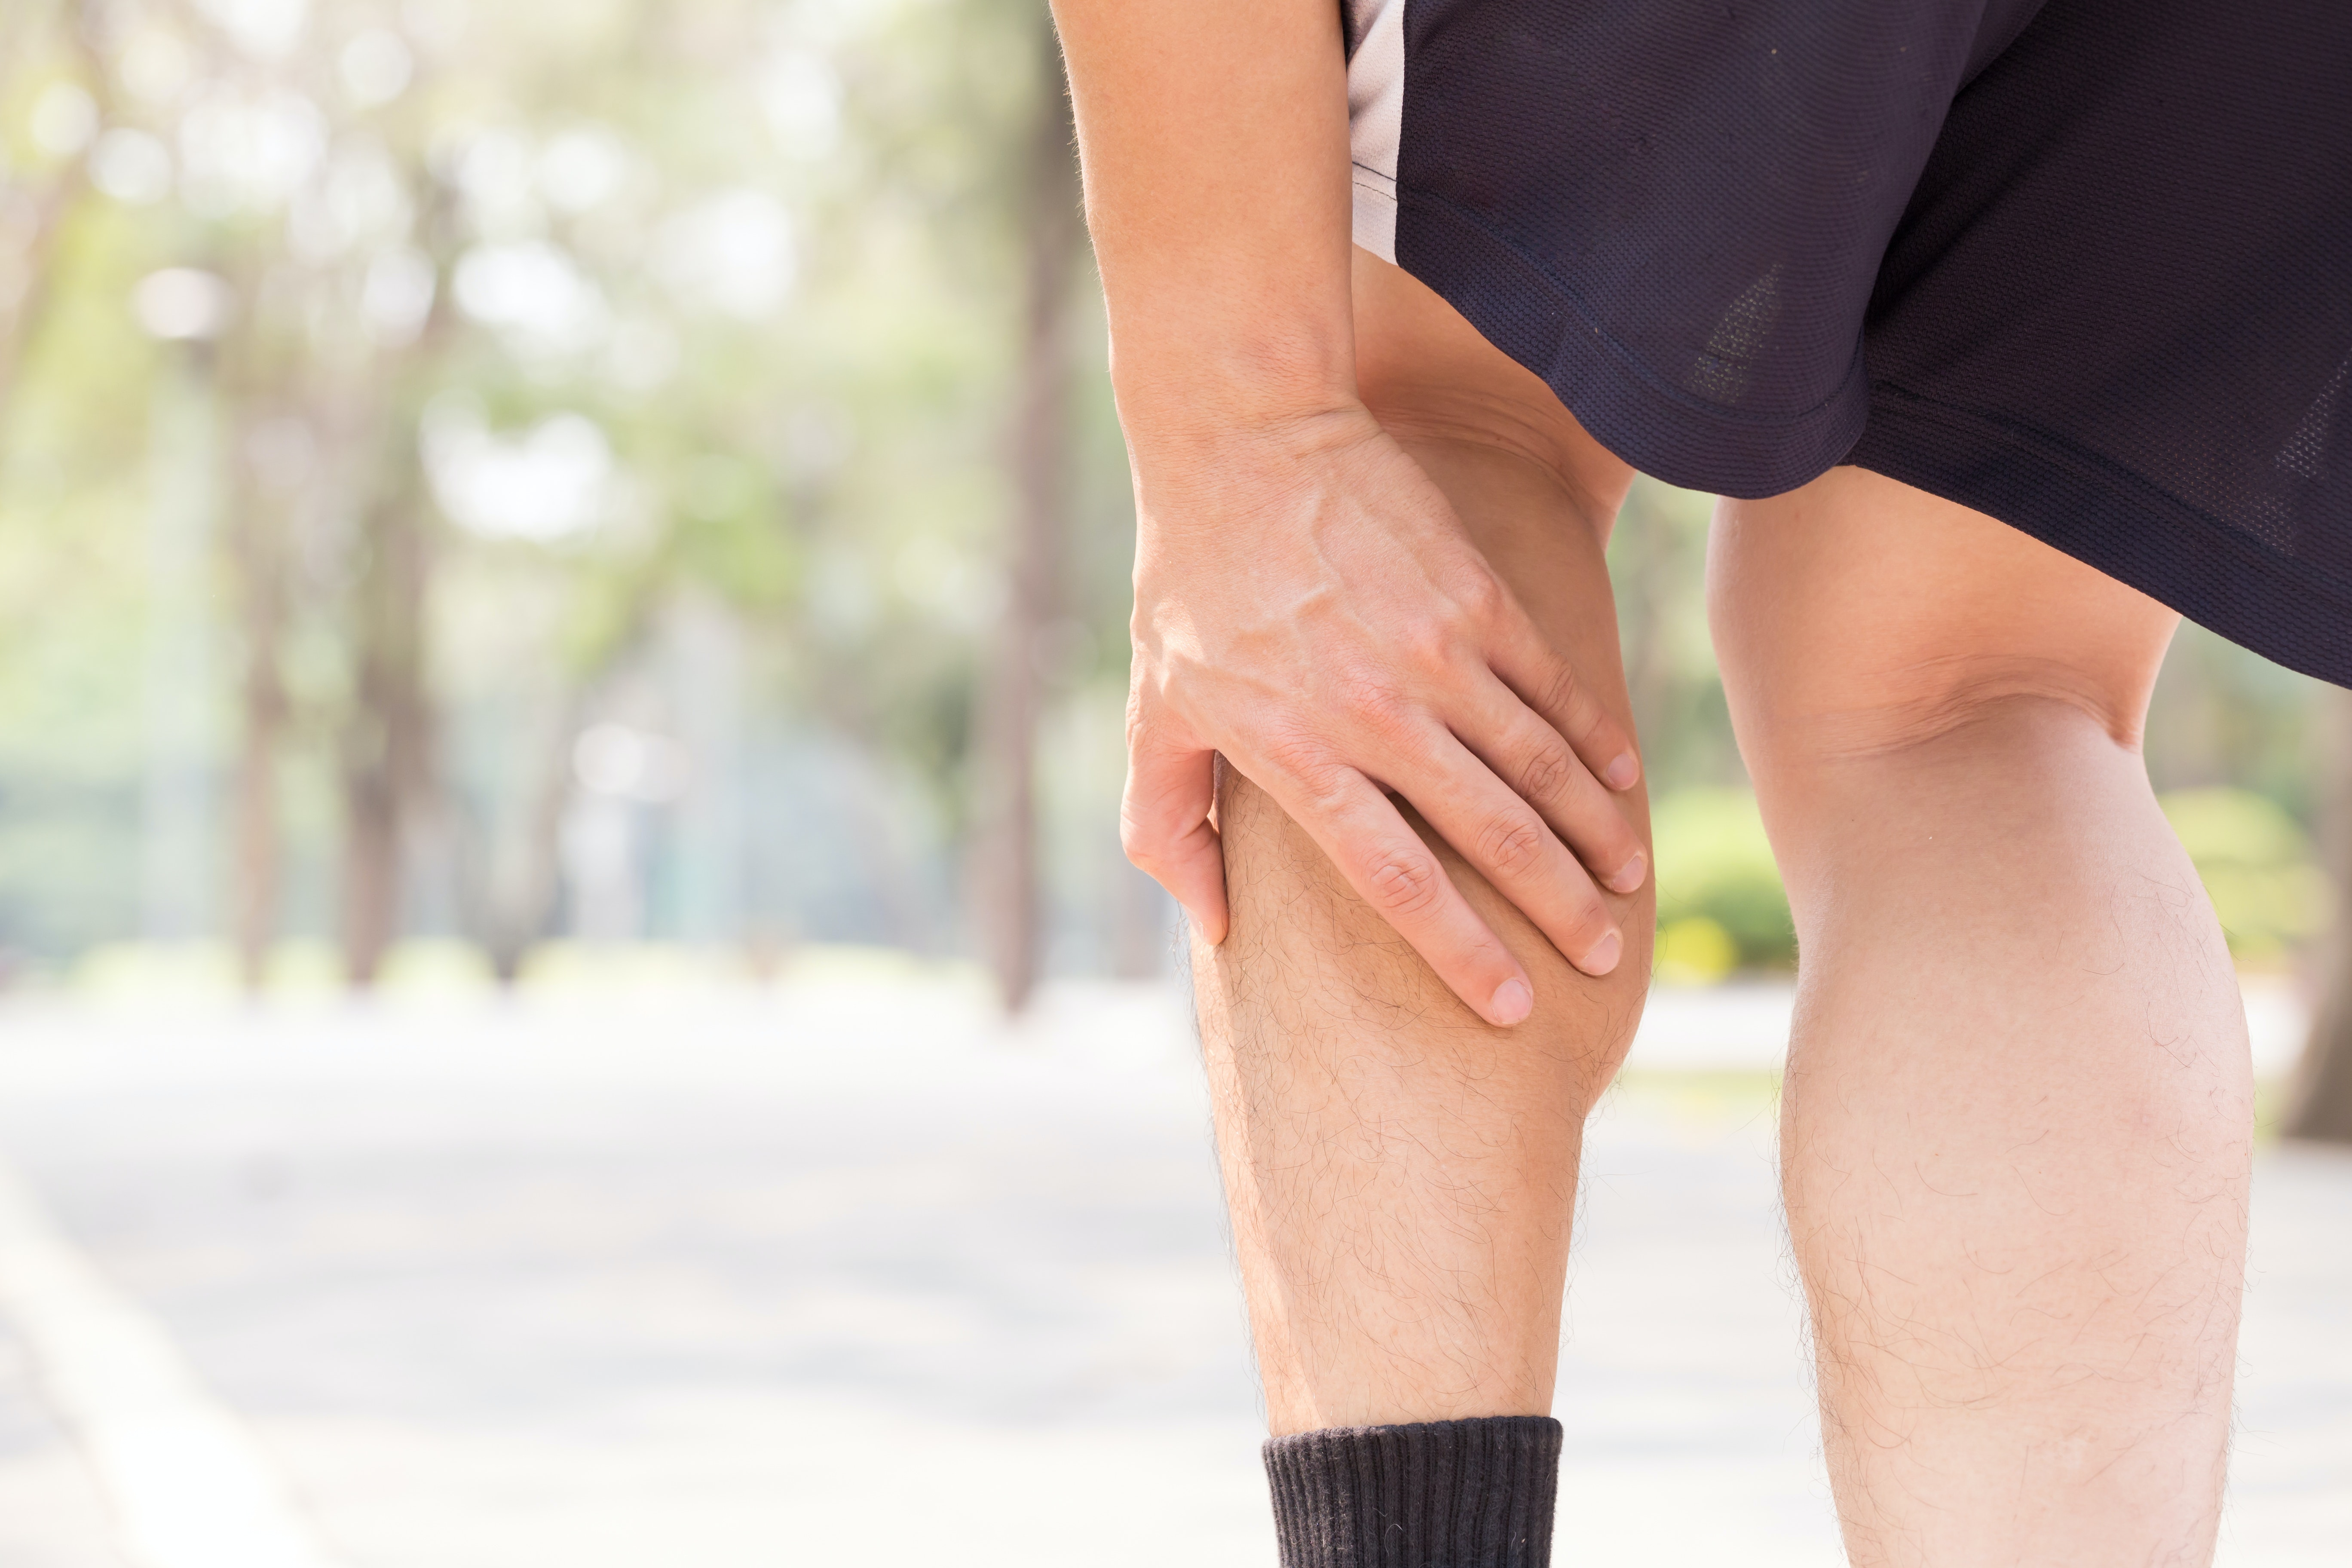 An image depicting a person suffering from calf pain symptoms